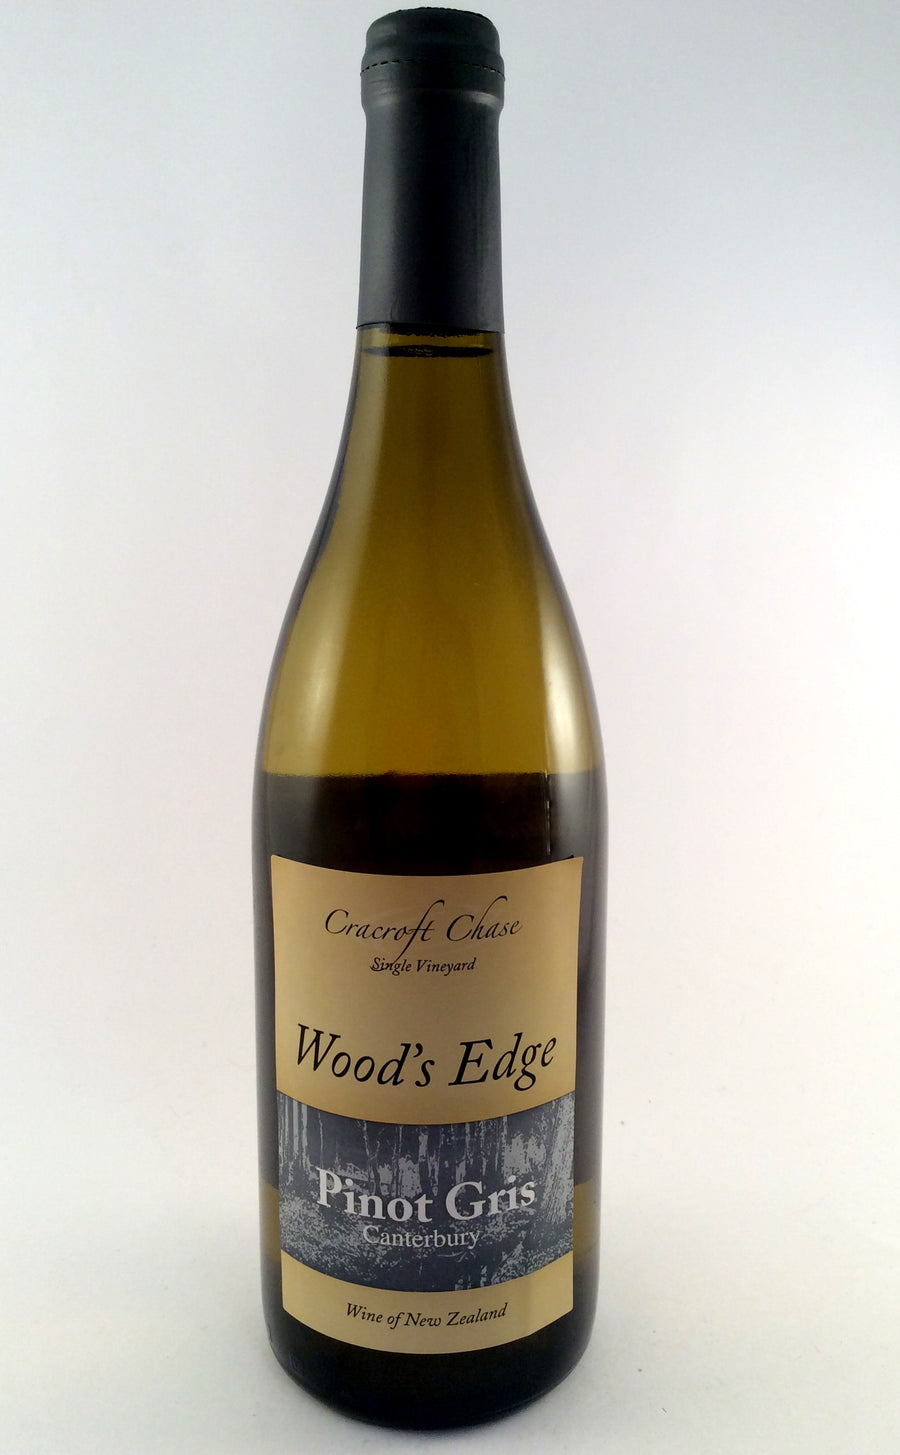 Cracroft Chase Woods Edge Pinot Gris